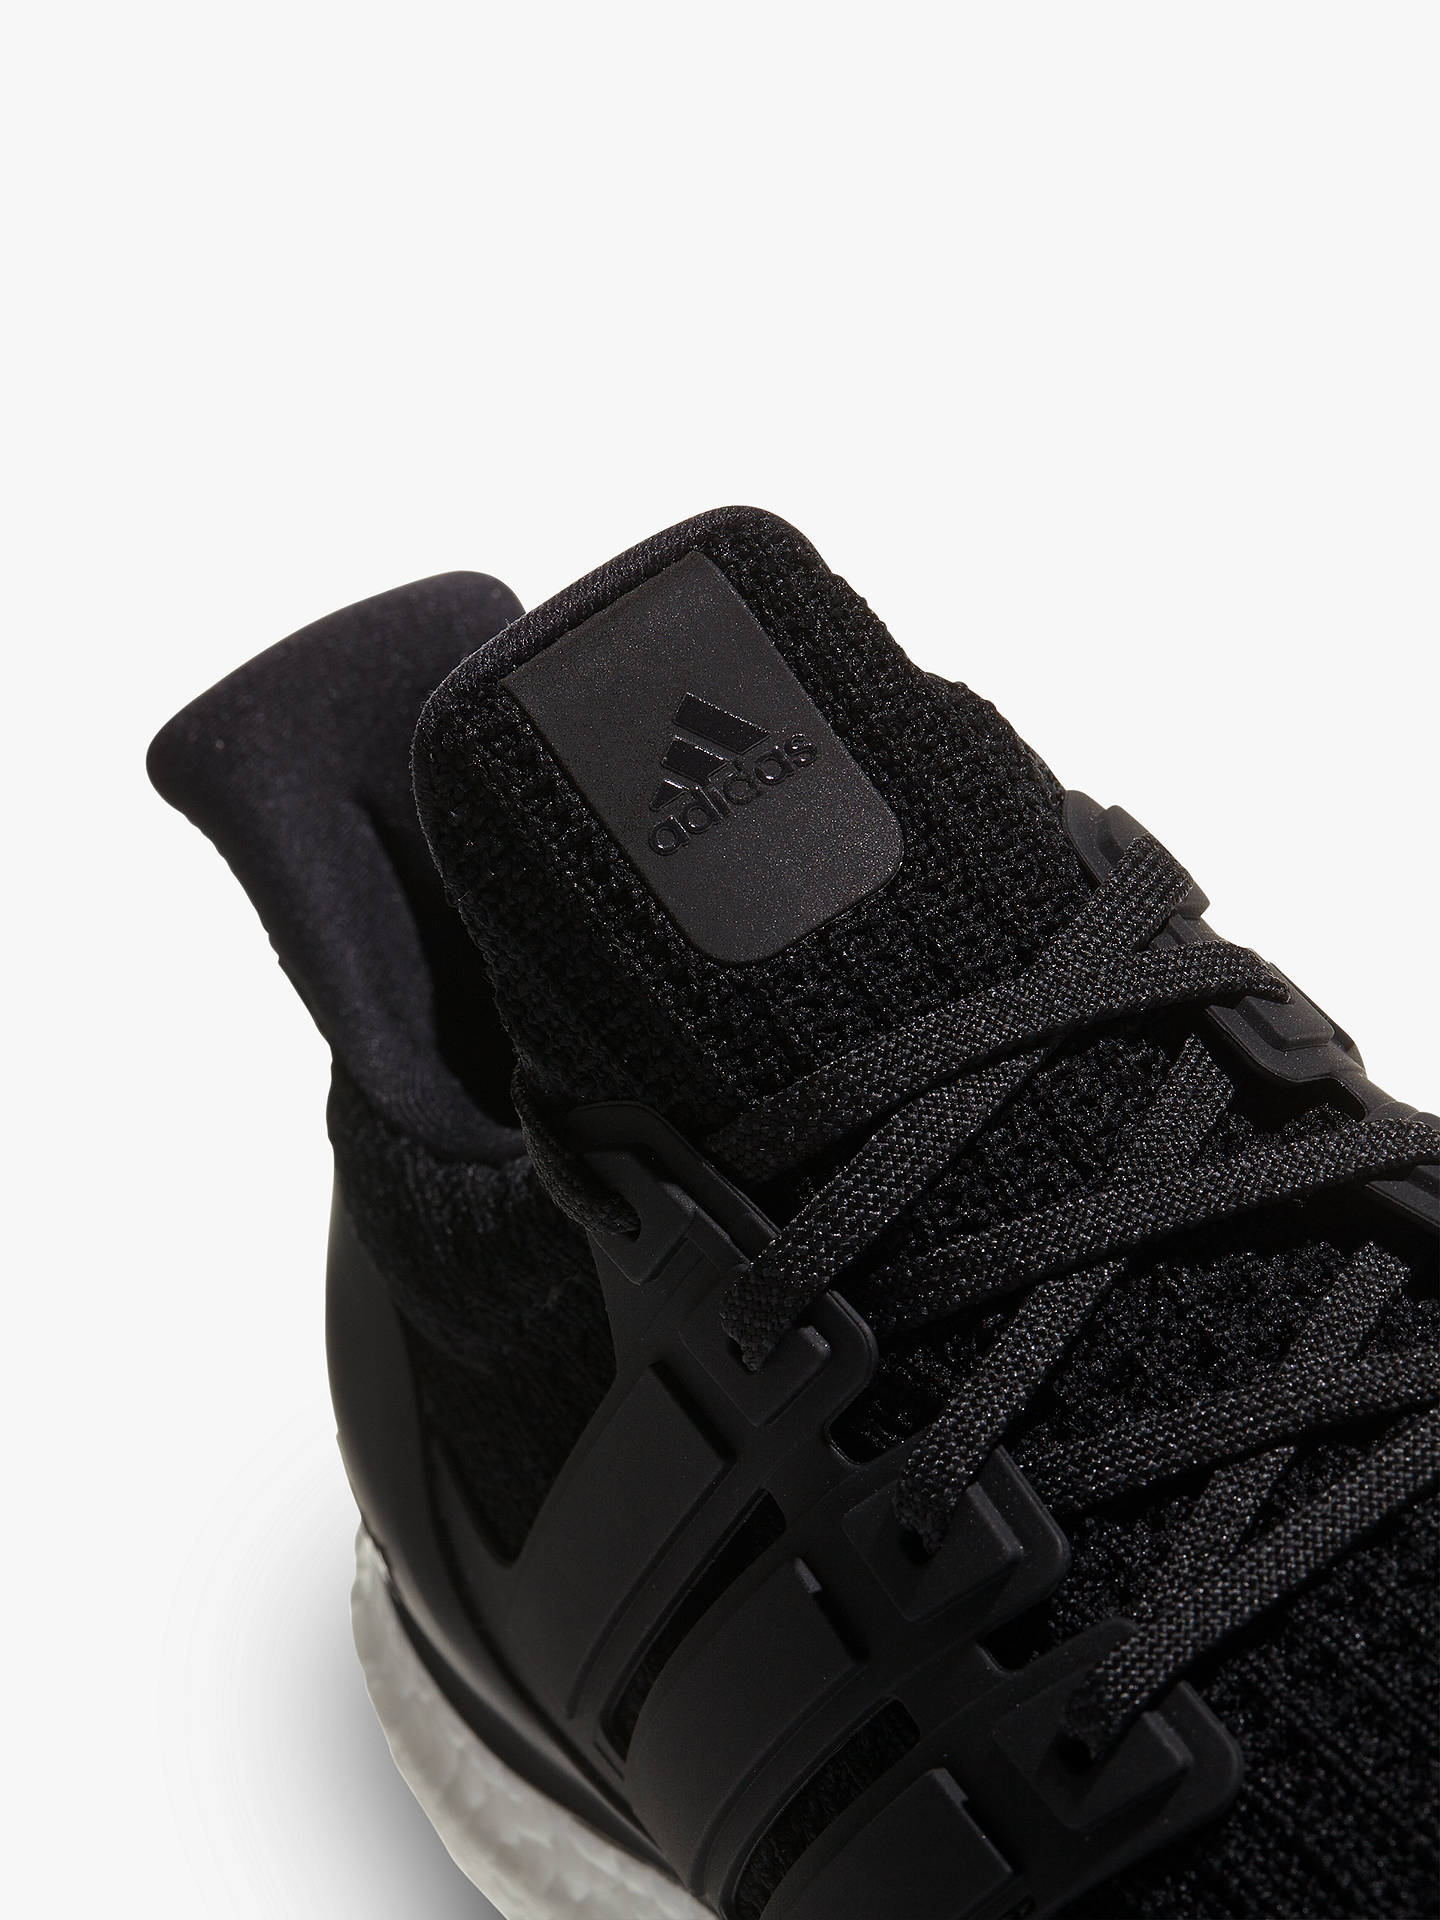 Buy adidas UltraBOOST Men's Running Shoes, Core Black, 7 Online at johnlewis.com